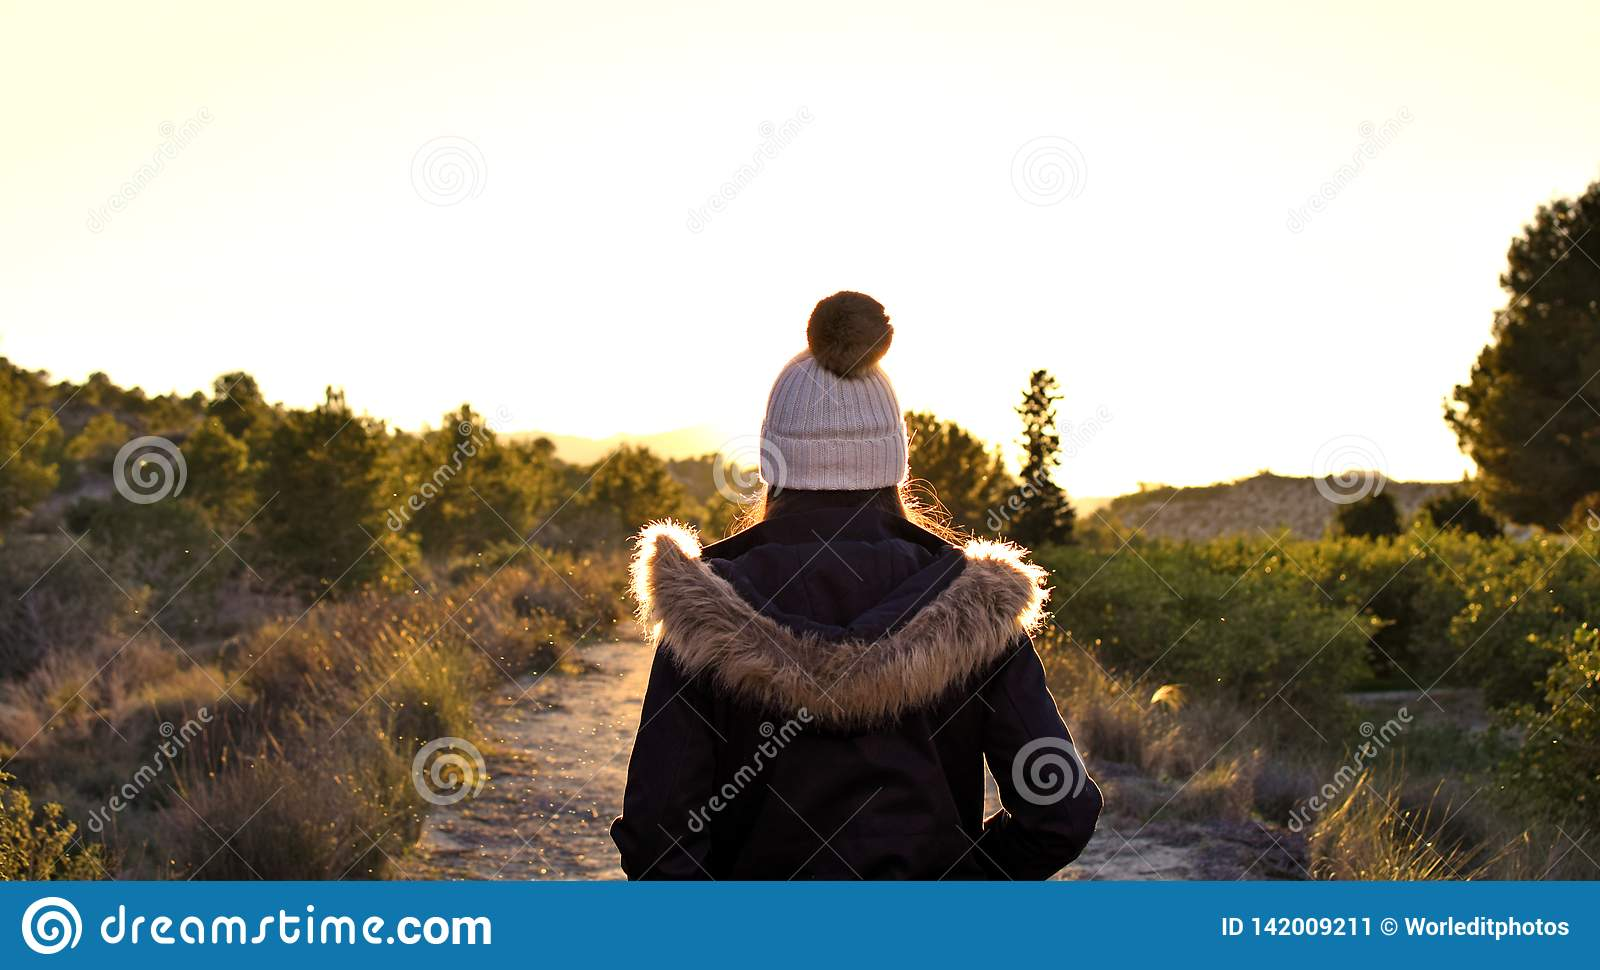 Beautiful caucasian girl outdoors in nature at day time